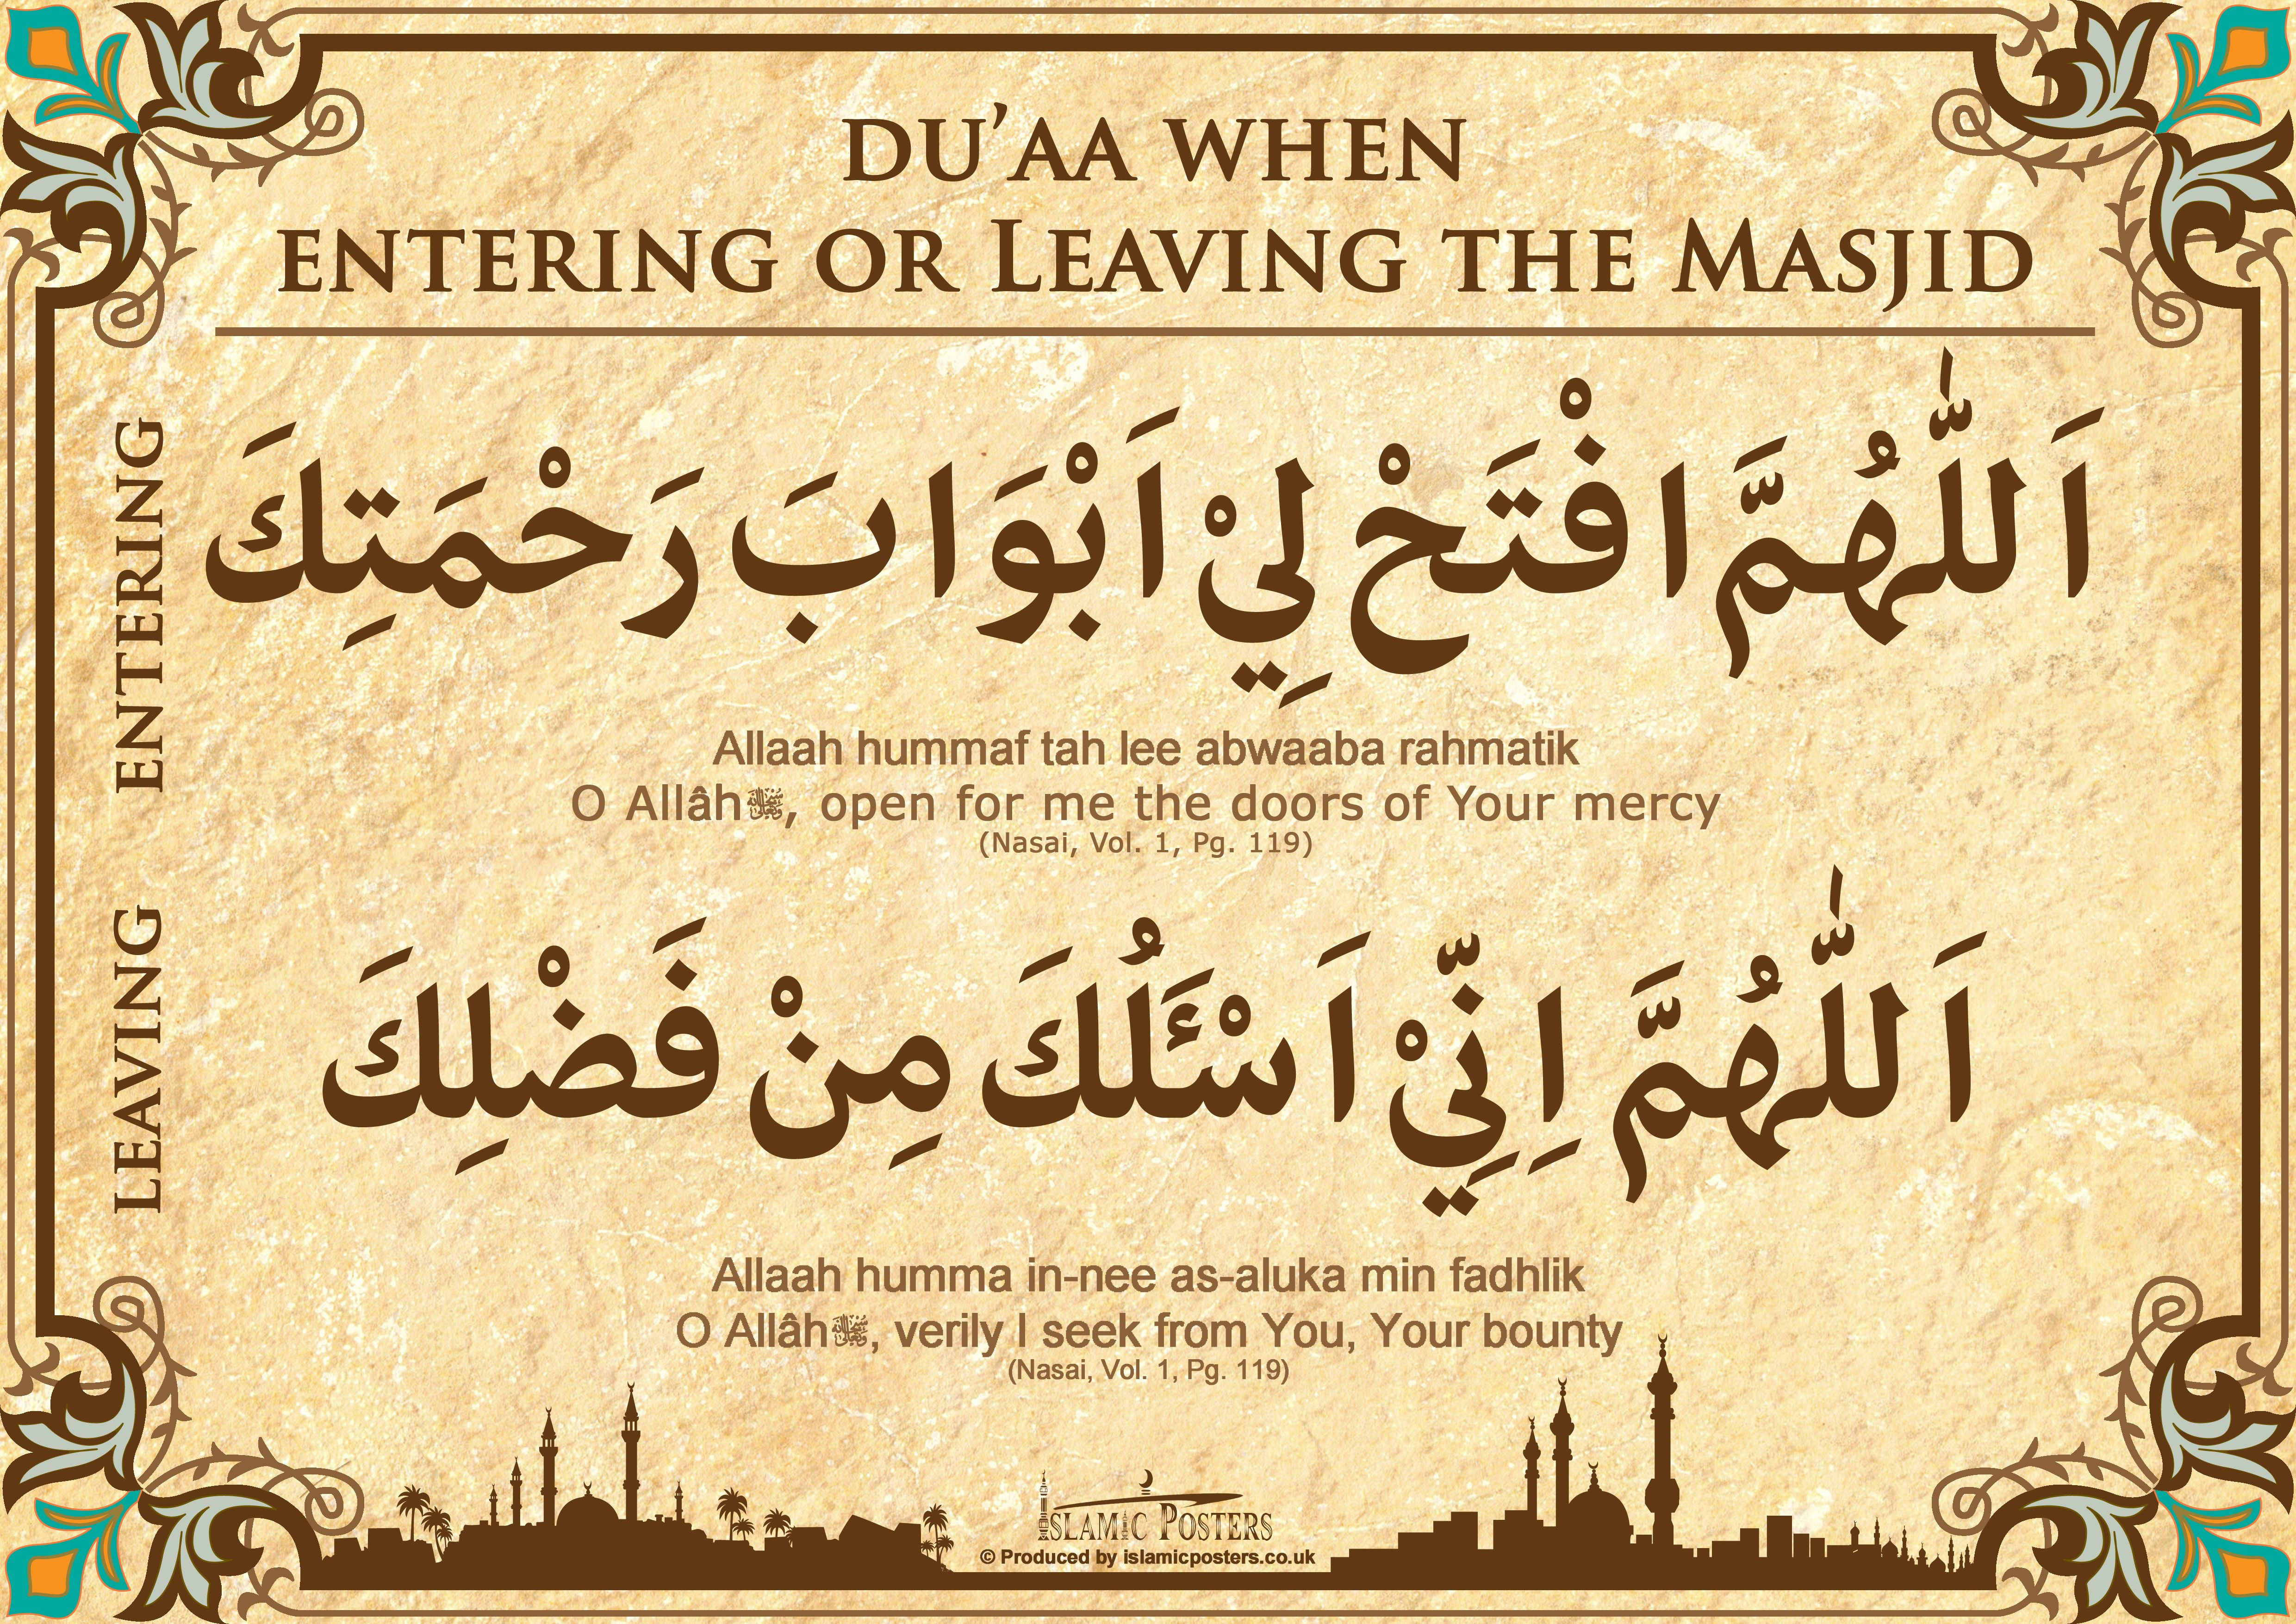 duaa when entering and when leaving the masjid masjid islamic